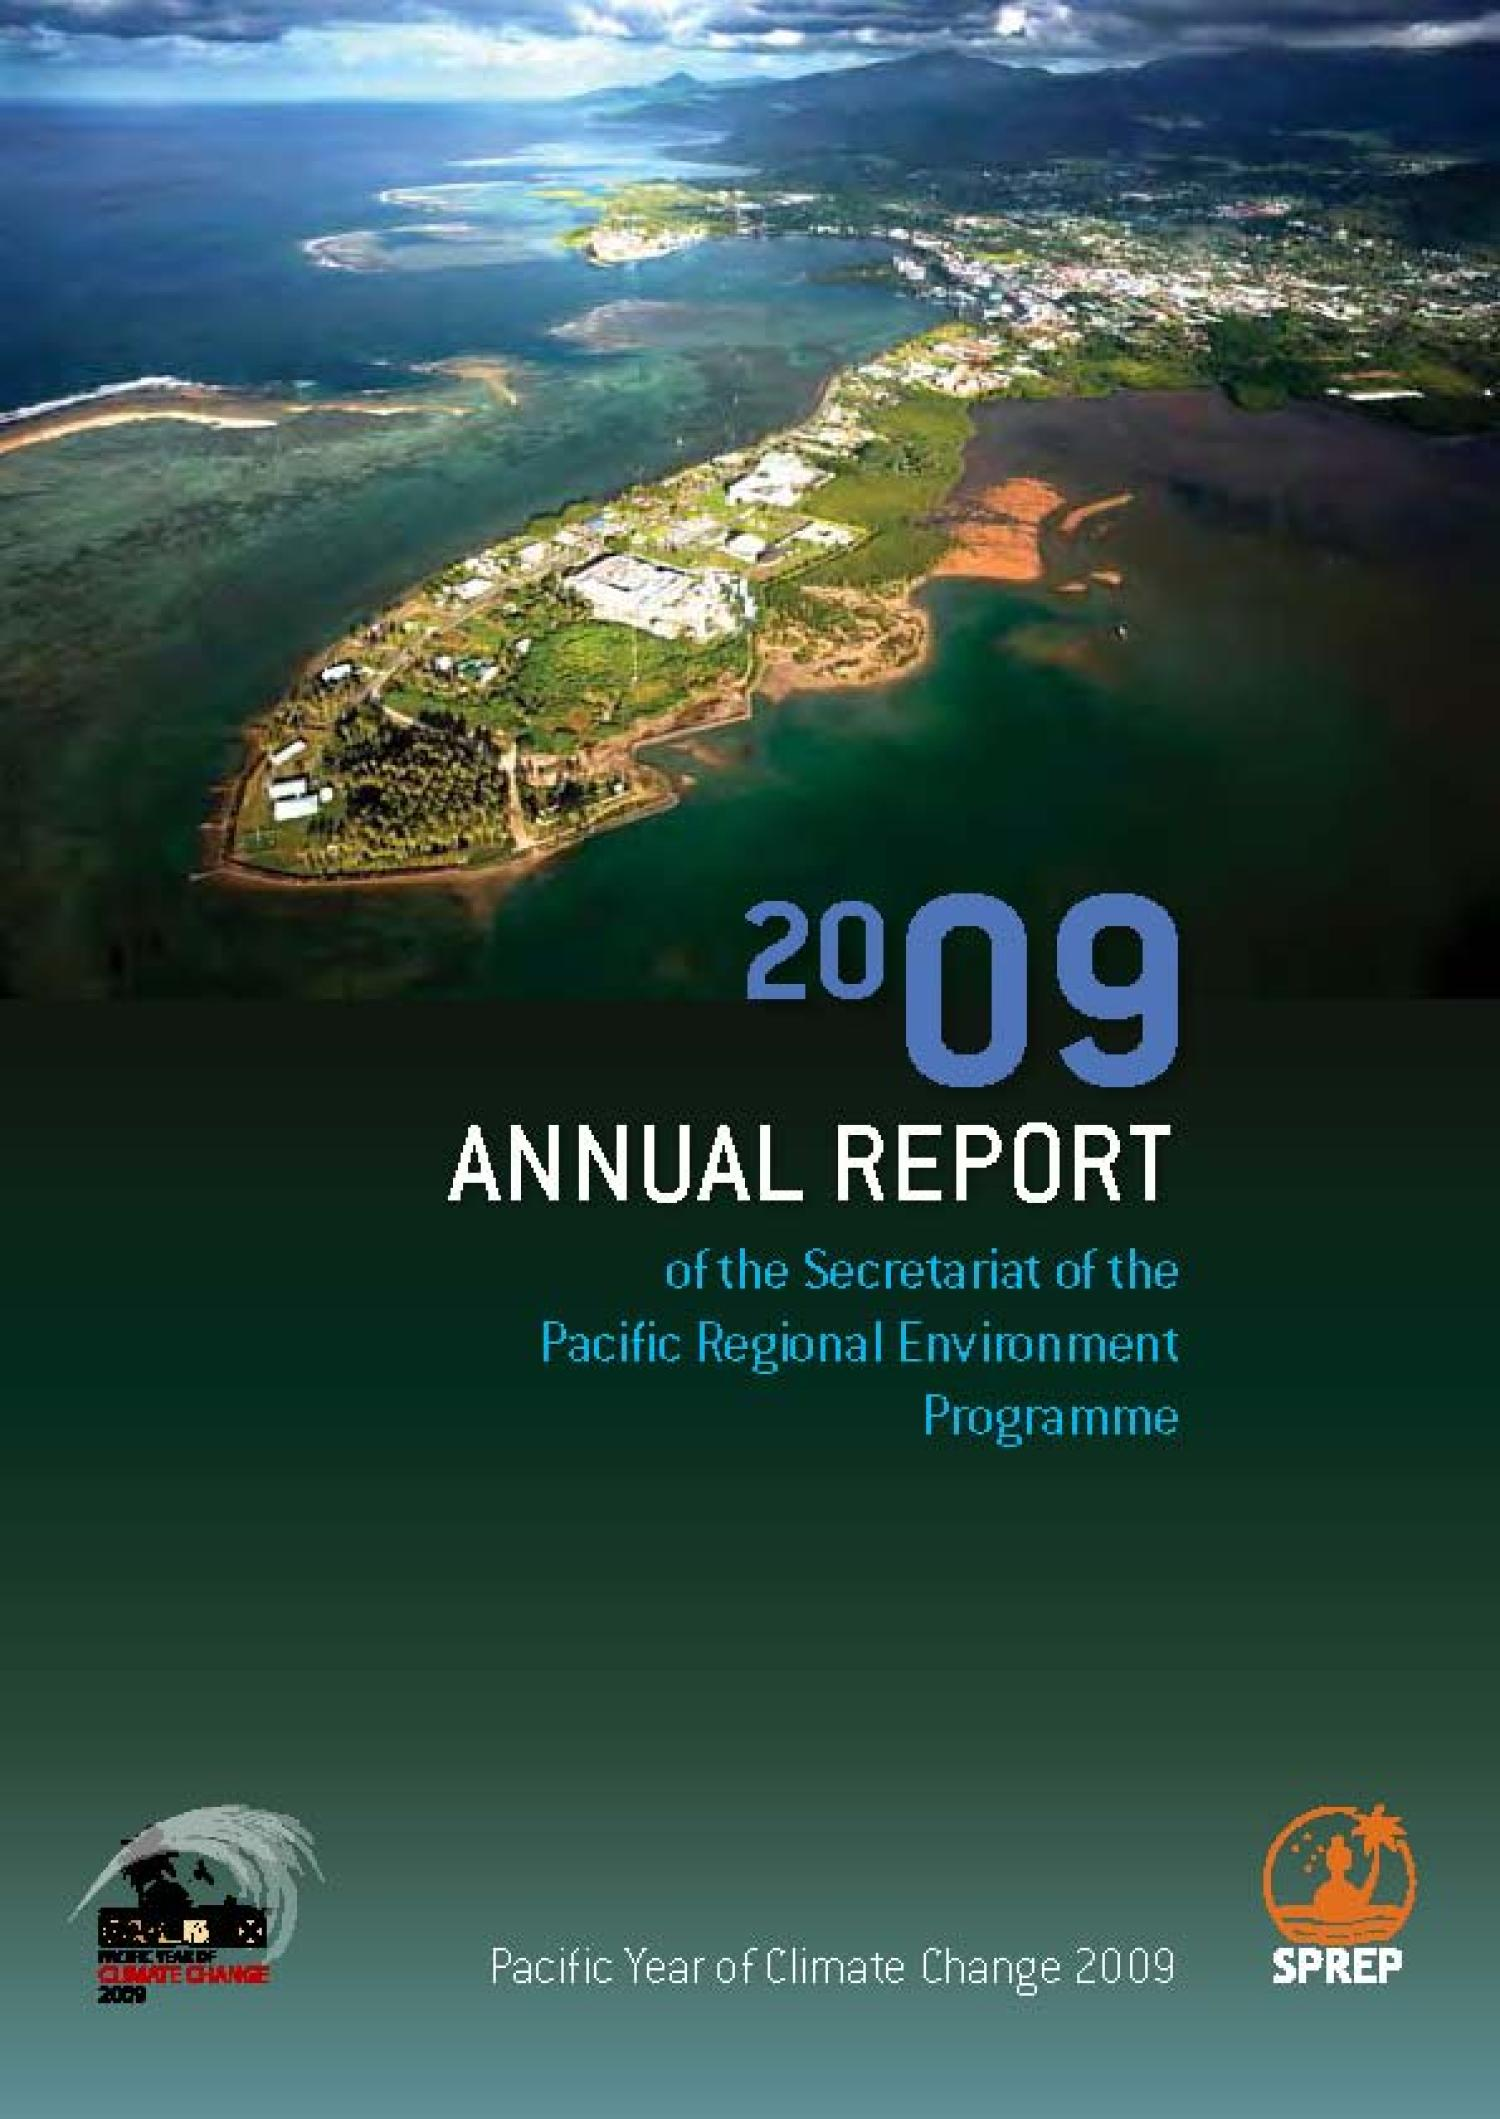 2009 Annual Report of the Secretariat of the Pacific Regional Environment Programme                                                                                                      Front Cover